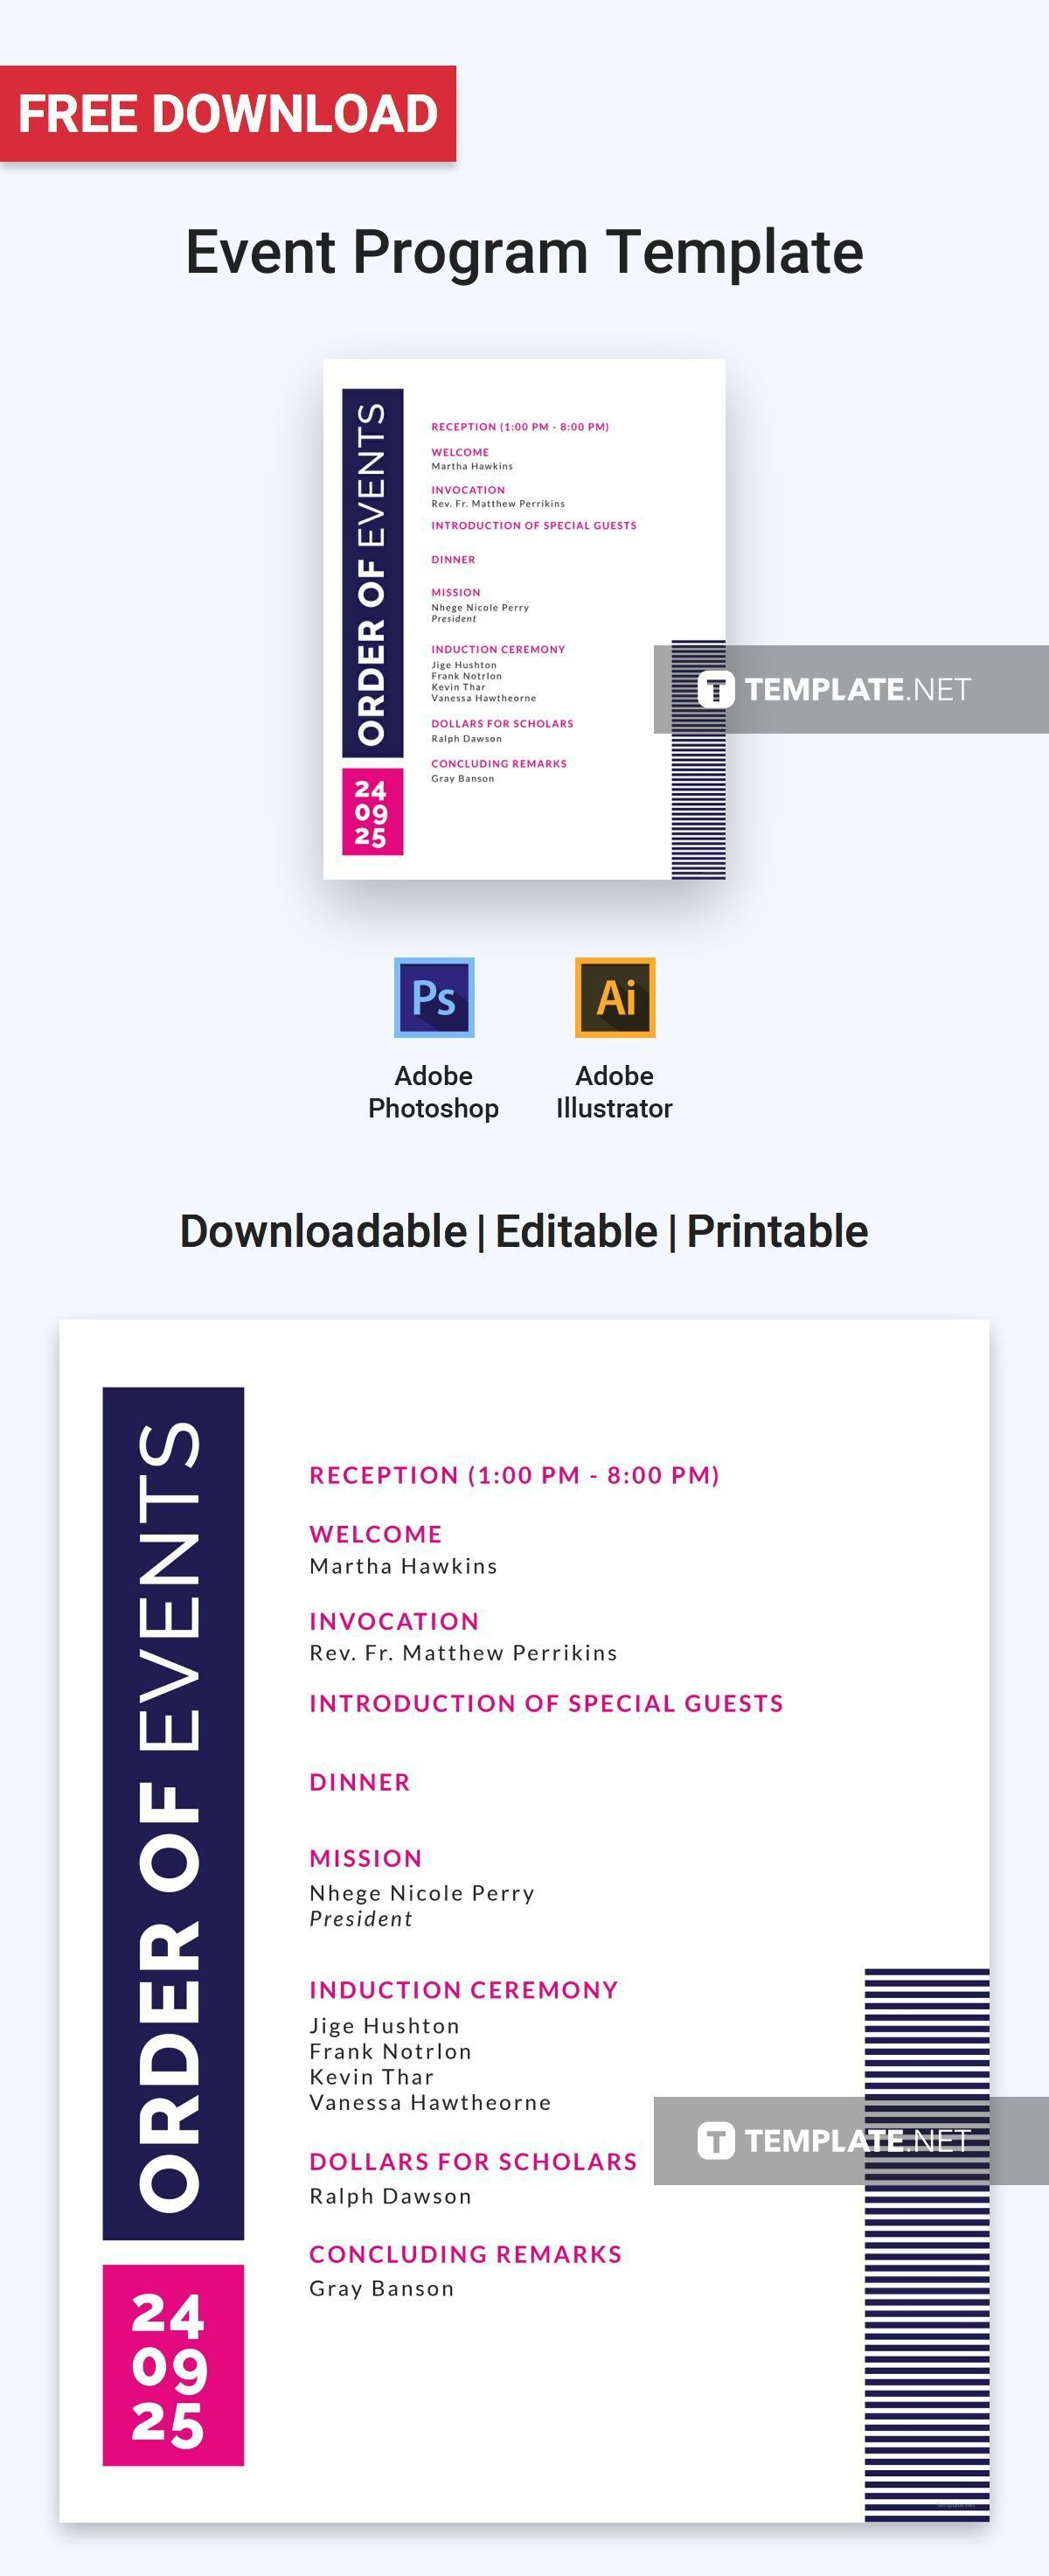 003 Magnificent Free Event Program Template Inspiration  Schedule Psd WordFull